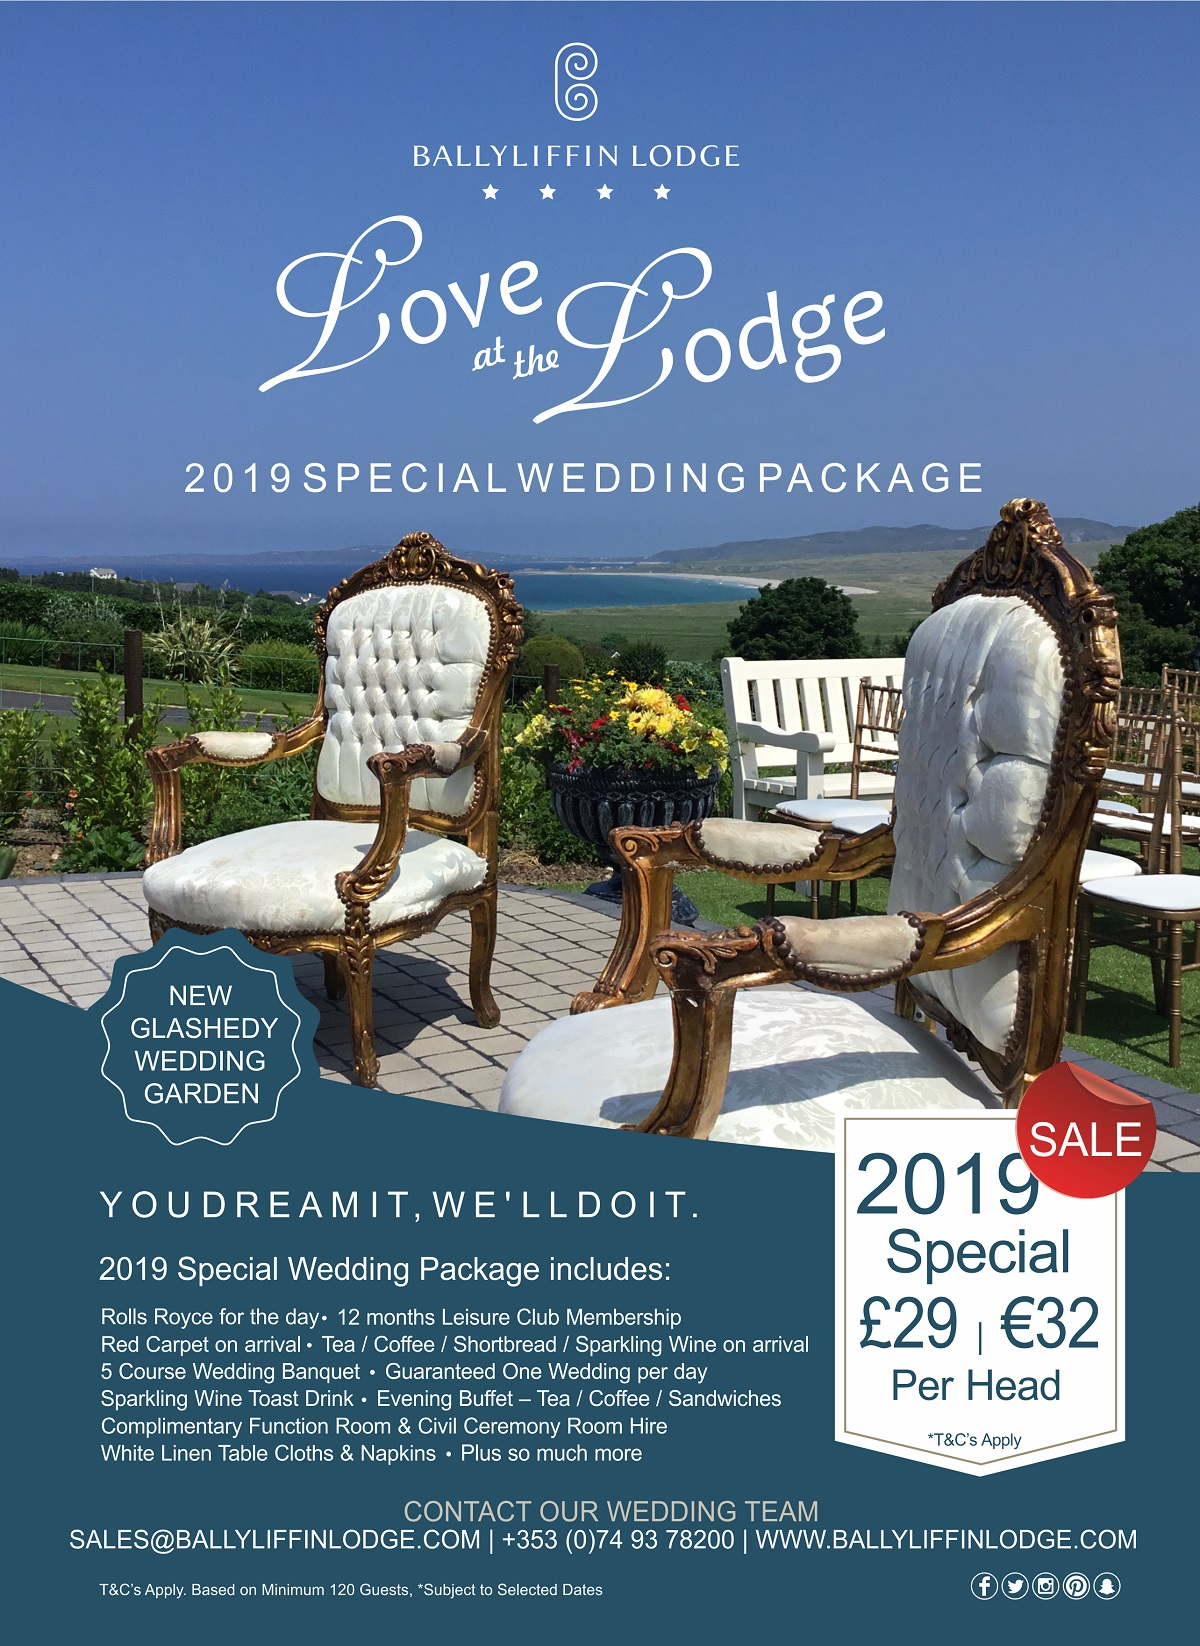 Love at the Lodge 2019